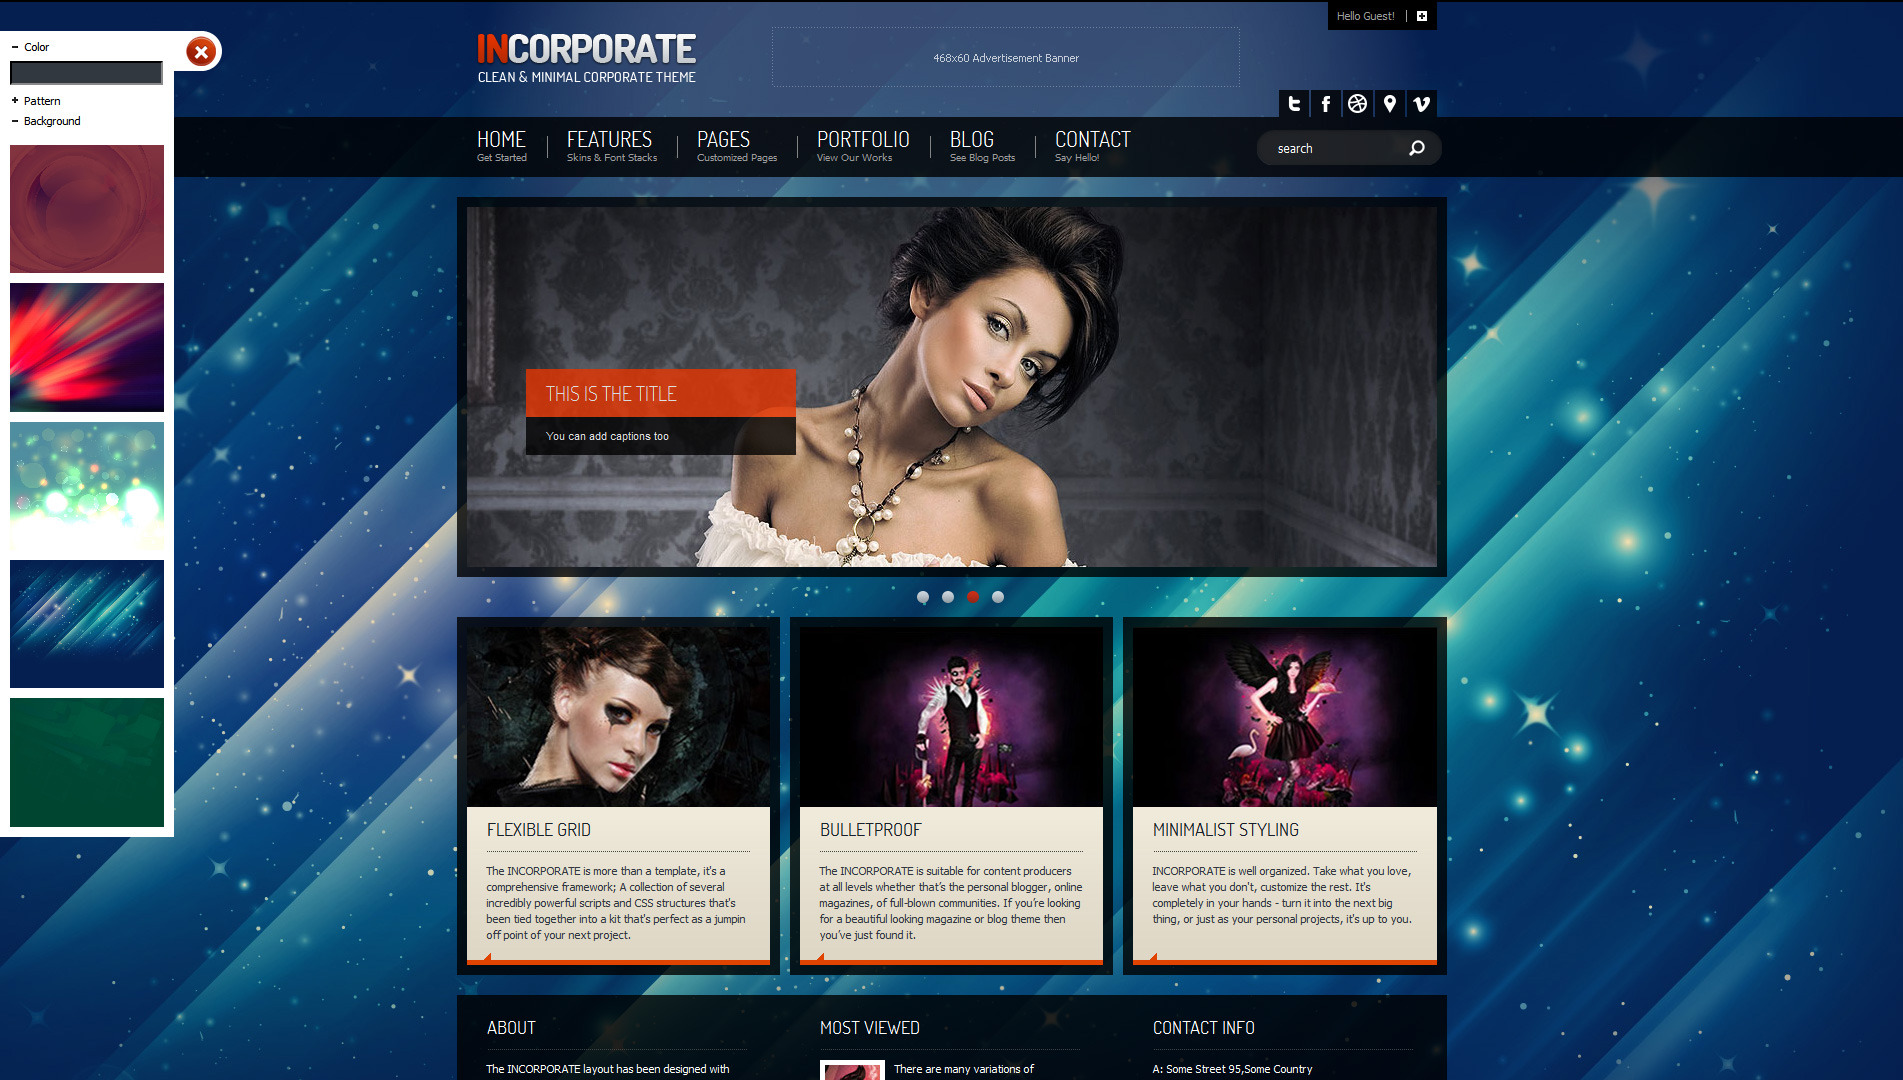 Incorporate Portfolio HTML Template - Homepage with background image and settings menu